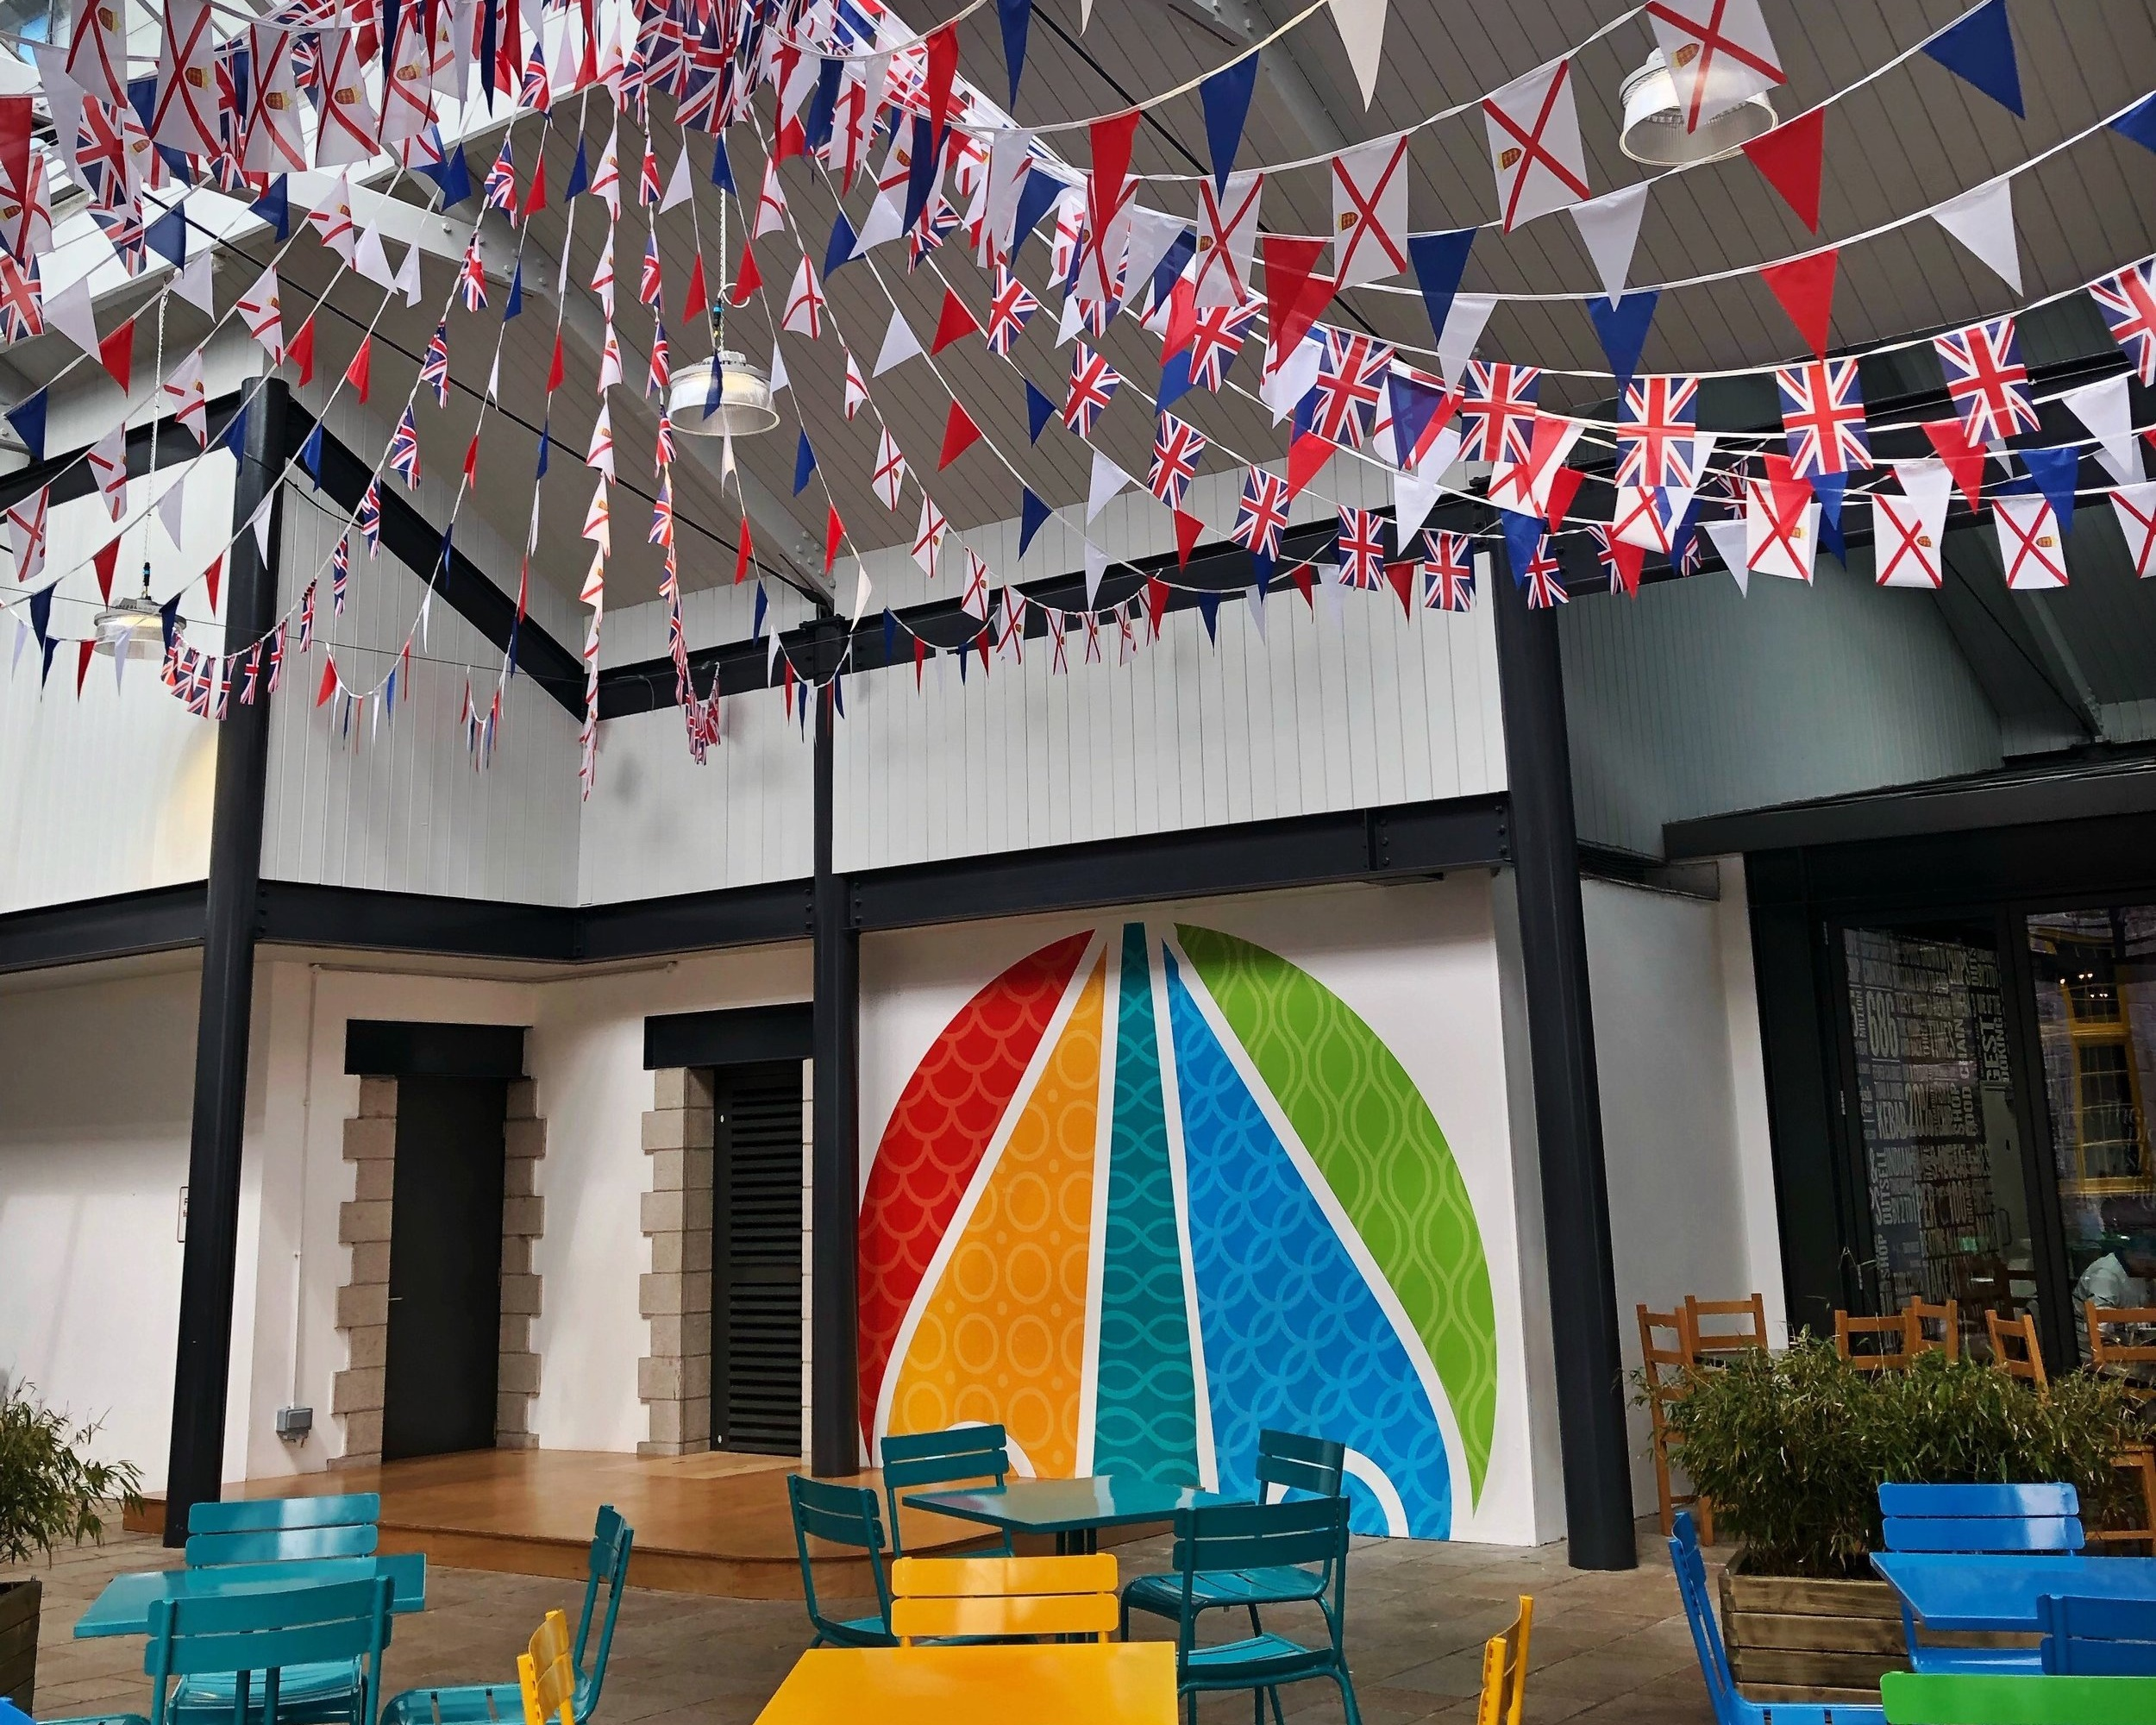 Liberty Wharf Gets into the Liberation Day Spirit -